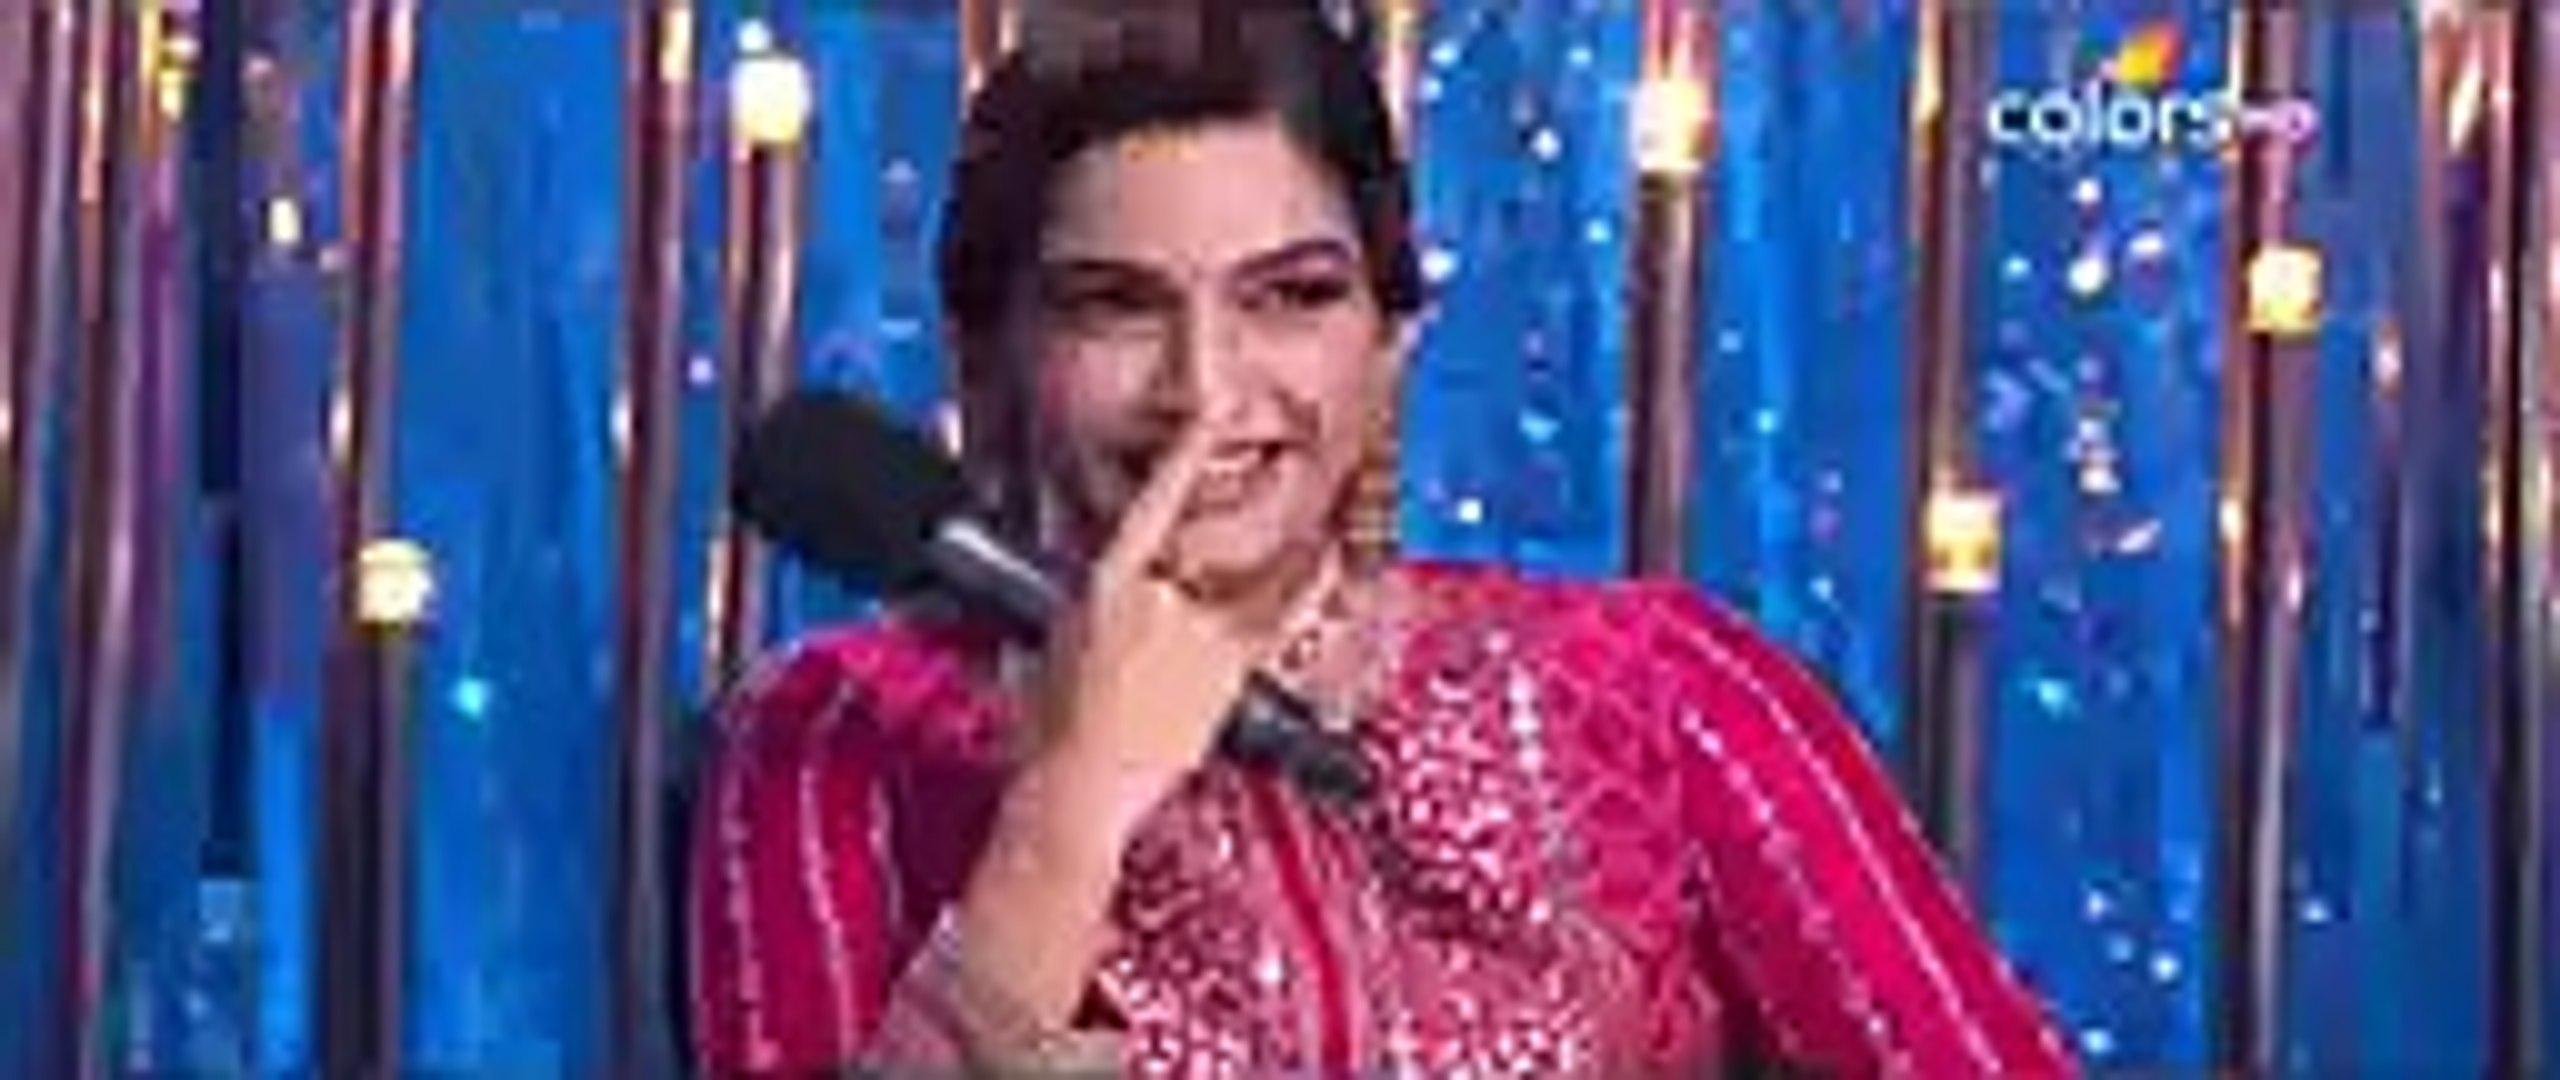 Reaction of Sonam Kapoor when Fawad Khan was Singing a Song top songs 2016 best songs new songs upco